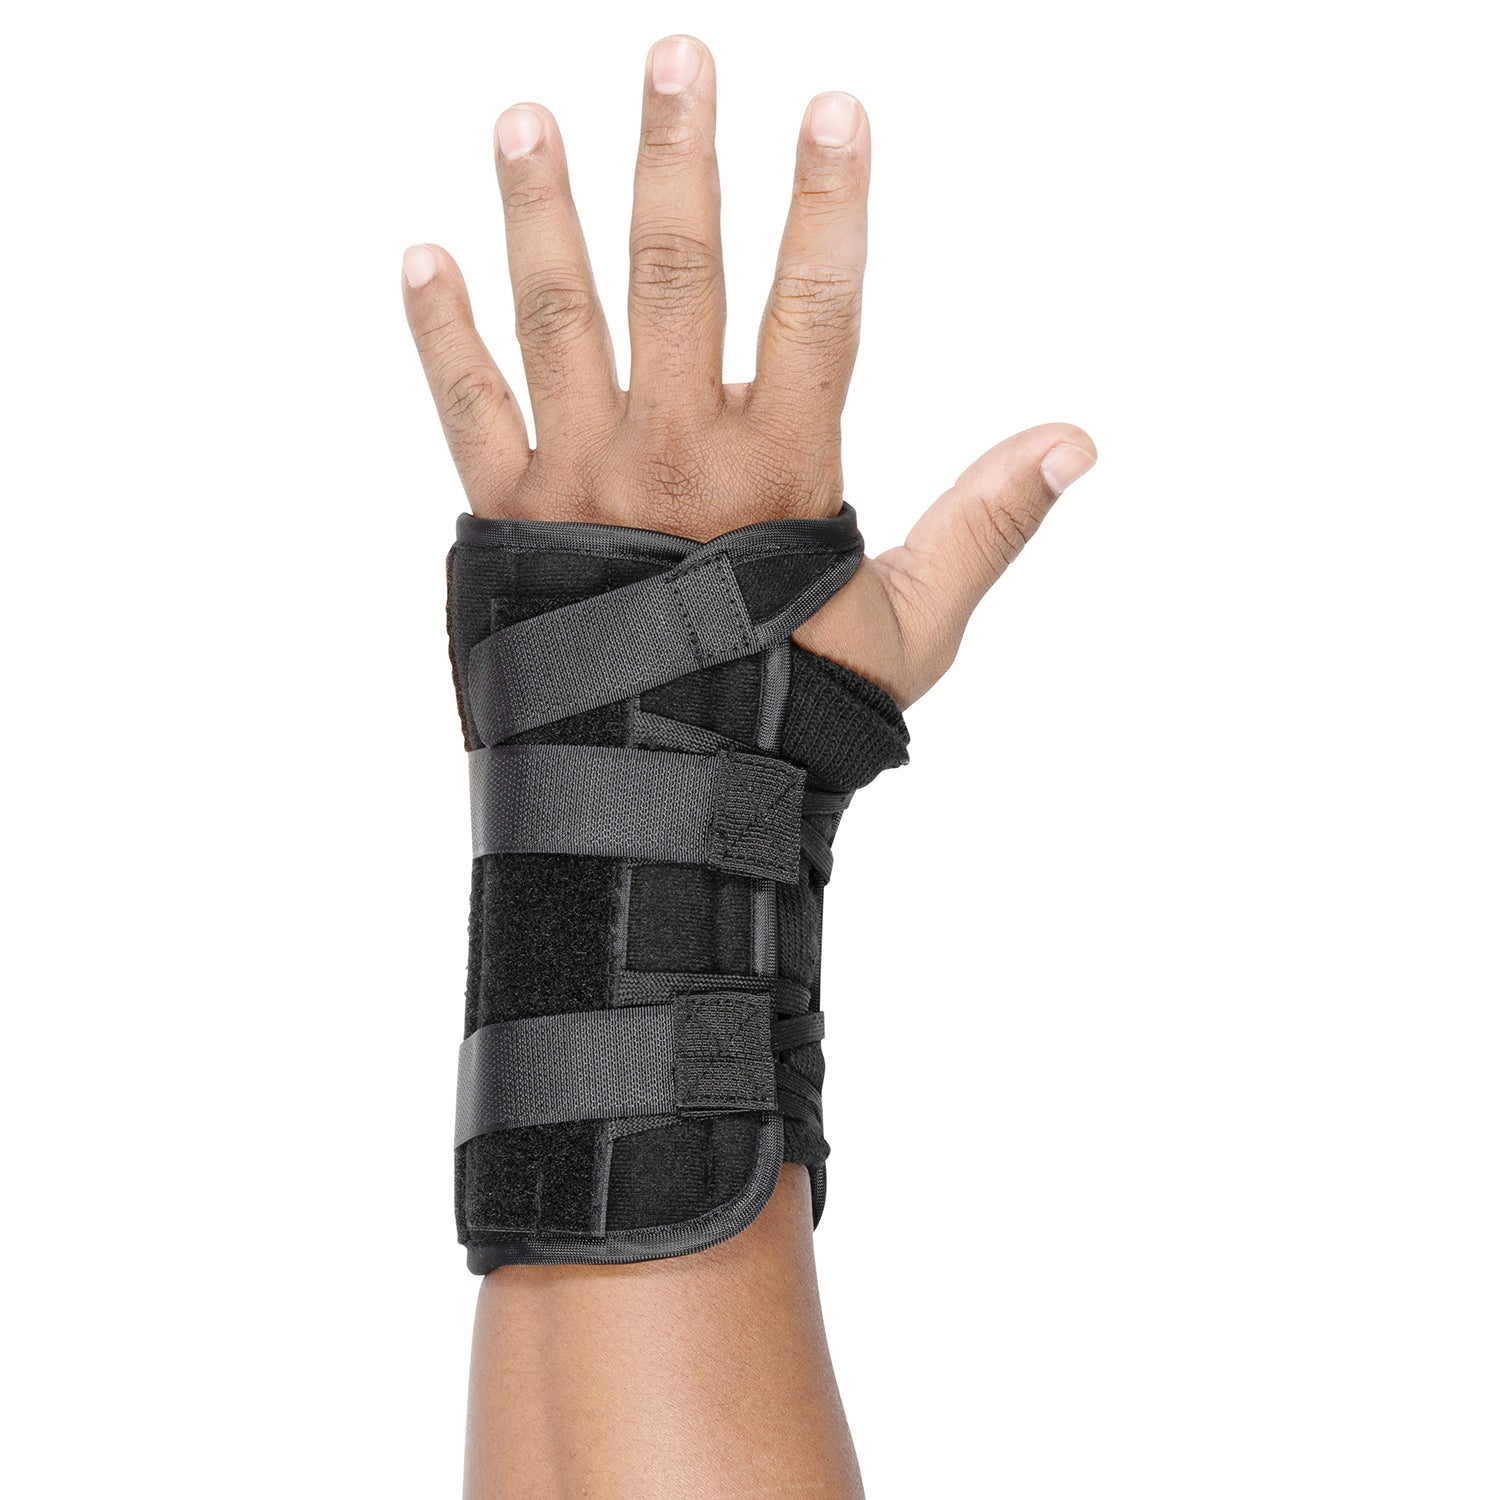 Endeavor Quick-Lace Wrist and Thumb Splint